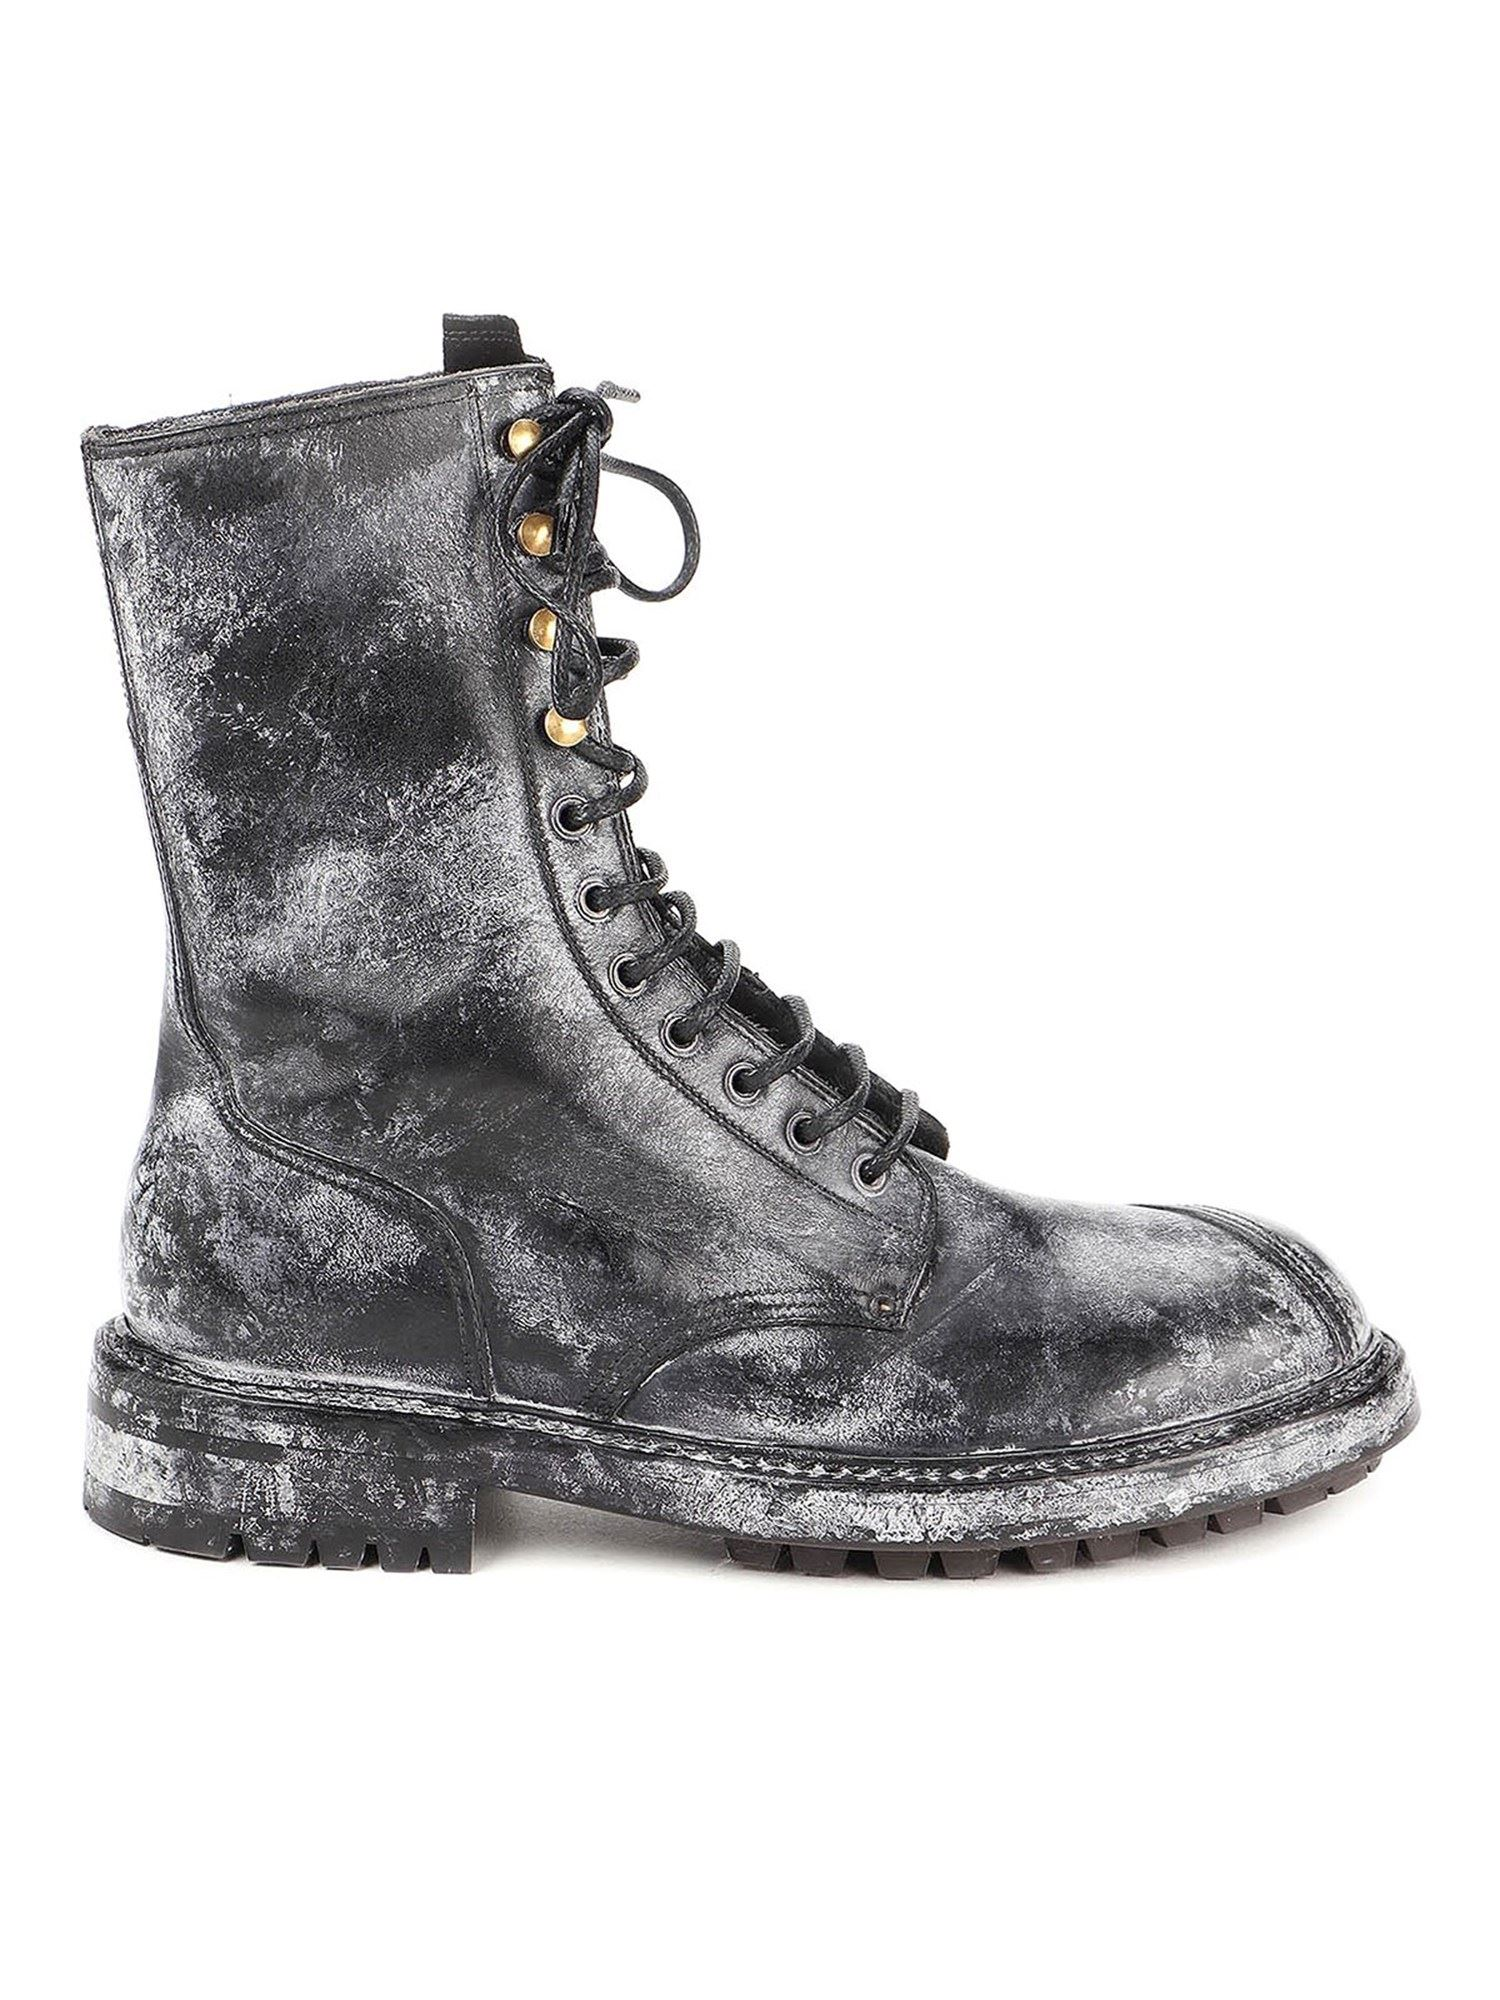 Dolce & Gabbana Leathers BERNINI VINTAGE-LOOK ANKLE BOOTS IN BLACK